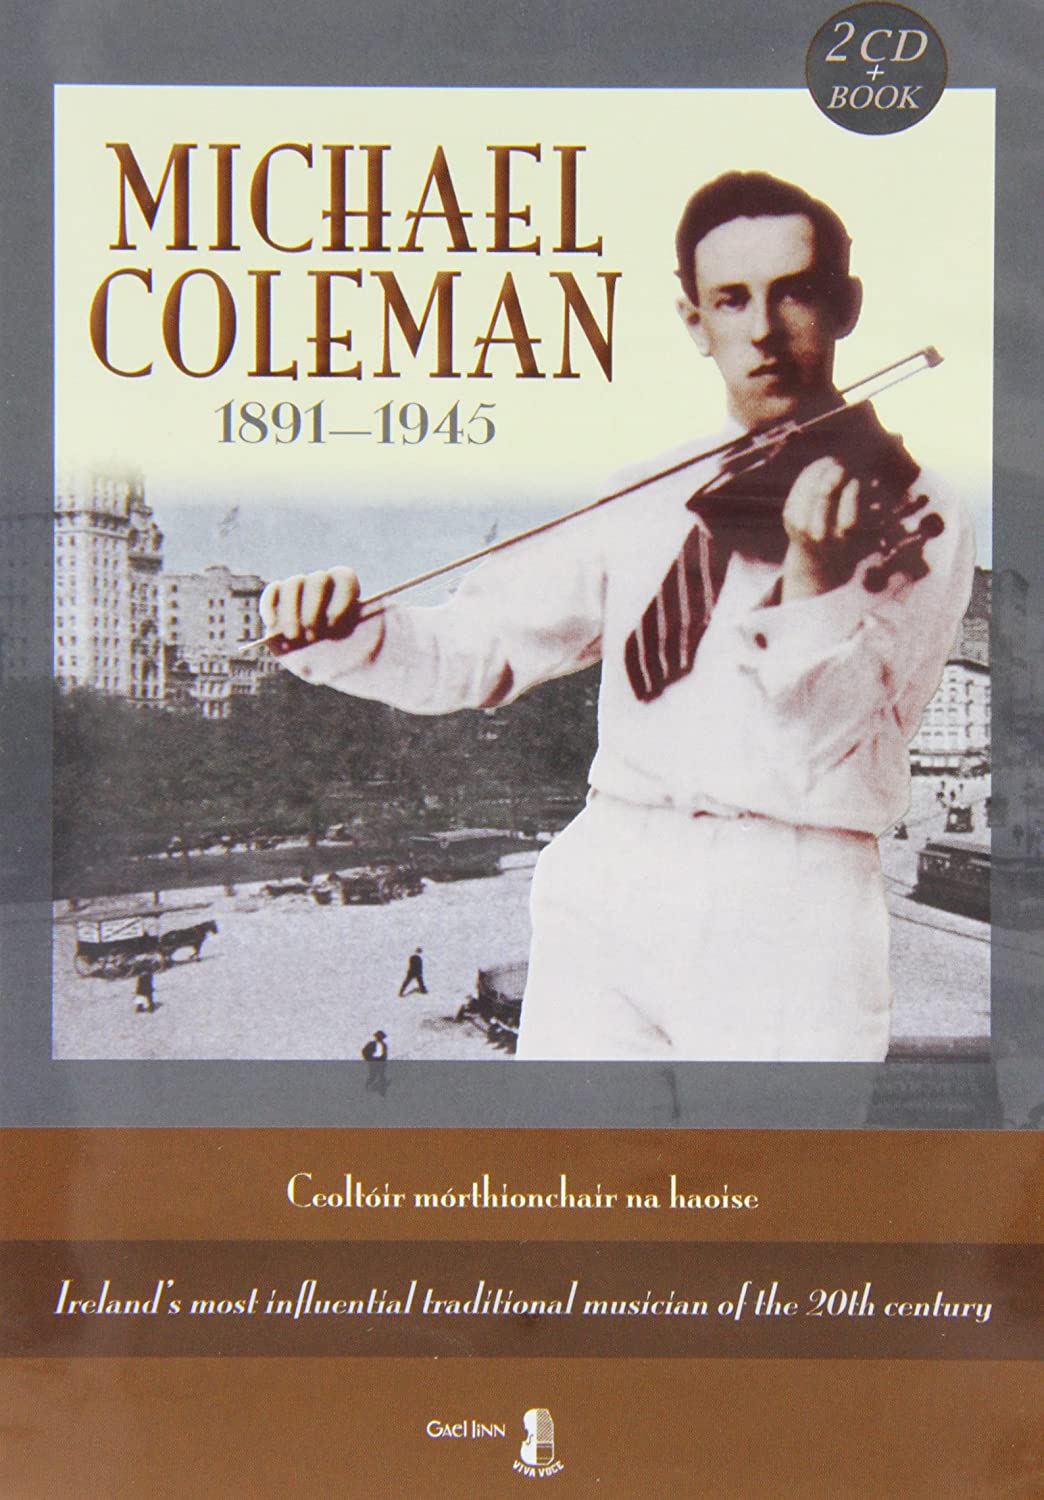 Michael Coleman album cover